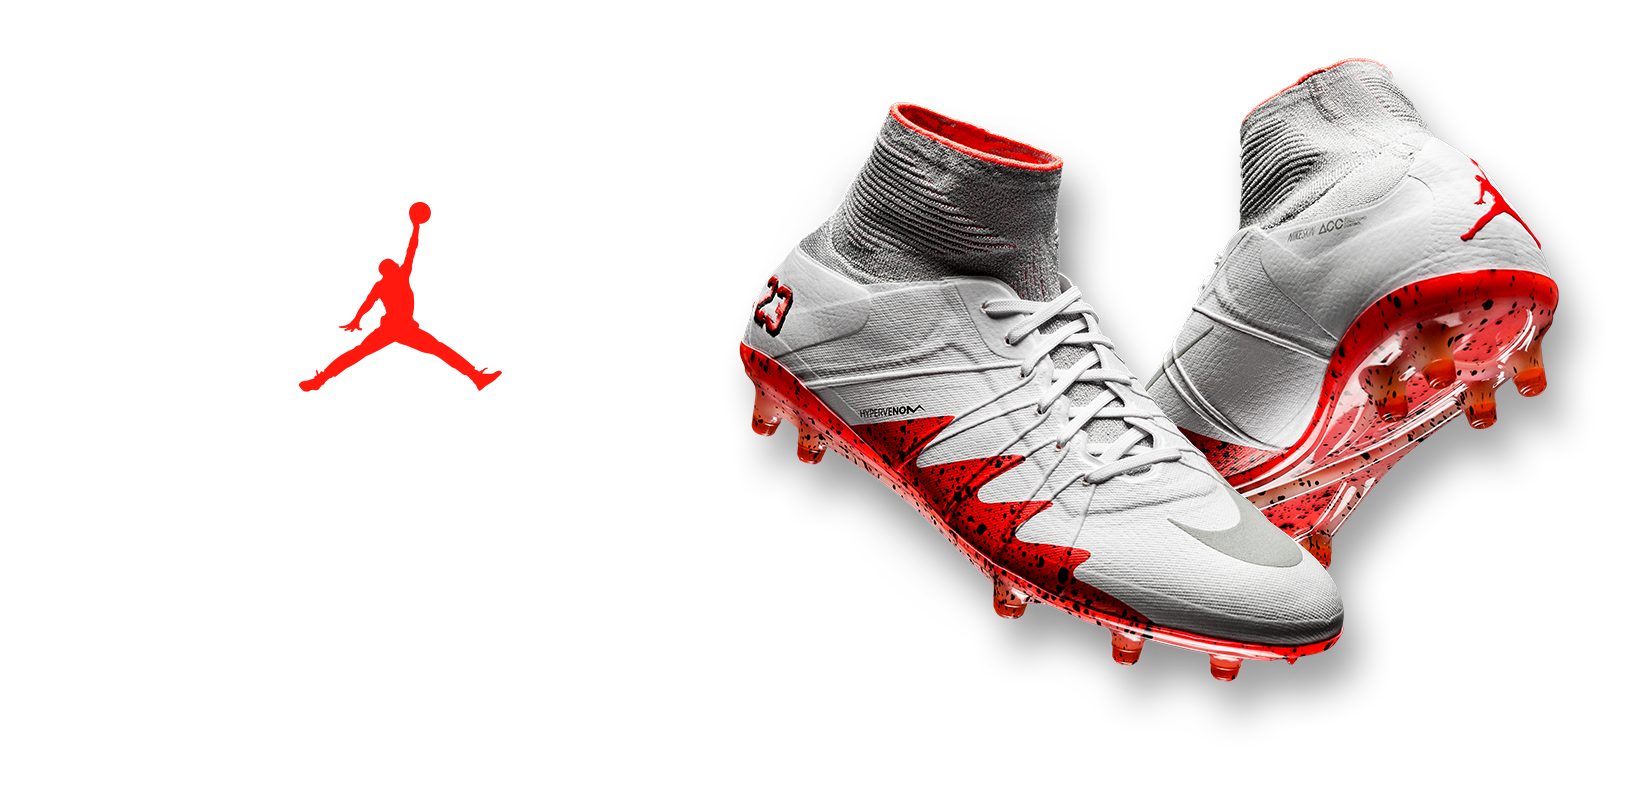 Buy your NEYMAR X JORDAN Hypervenom on Unisportstore.com now 6c8f1418bfc2